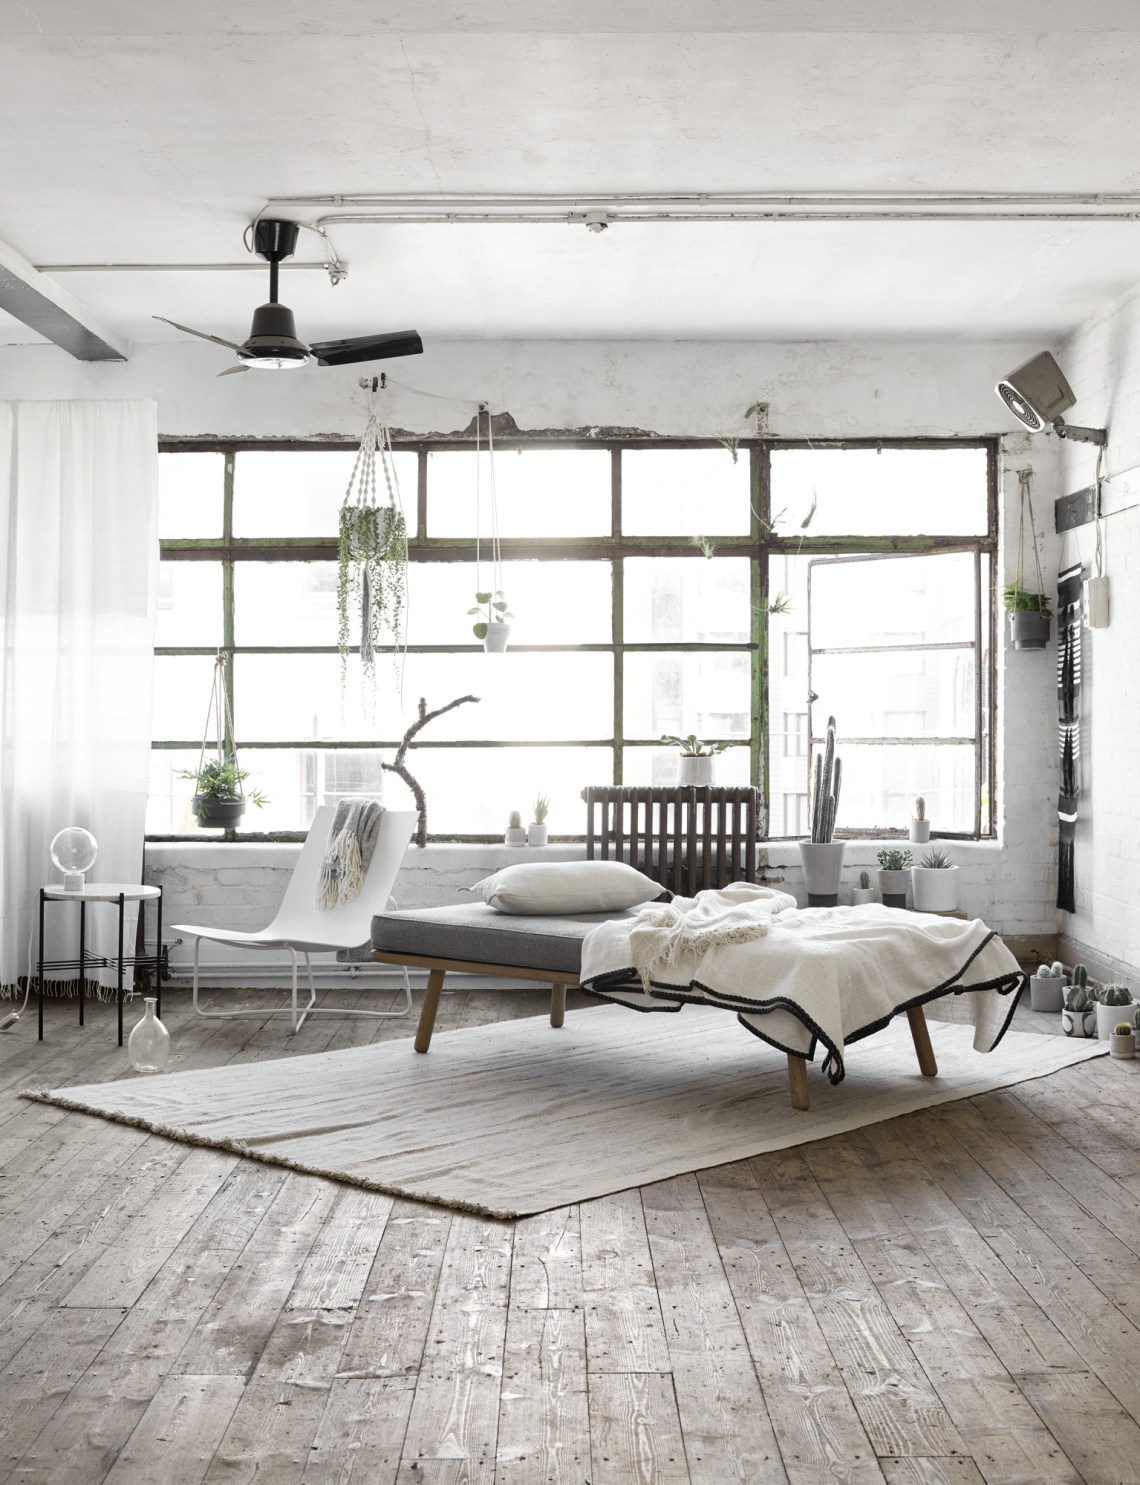 Lofty greens - via cocolapinedesign.com